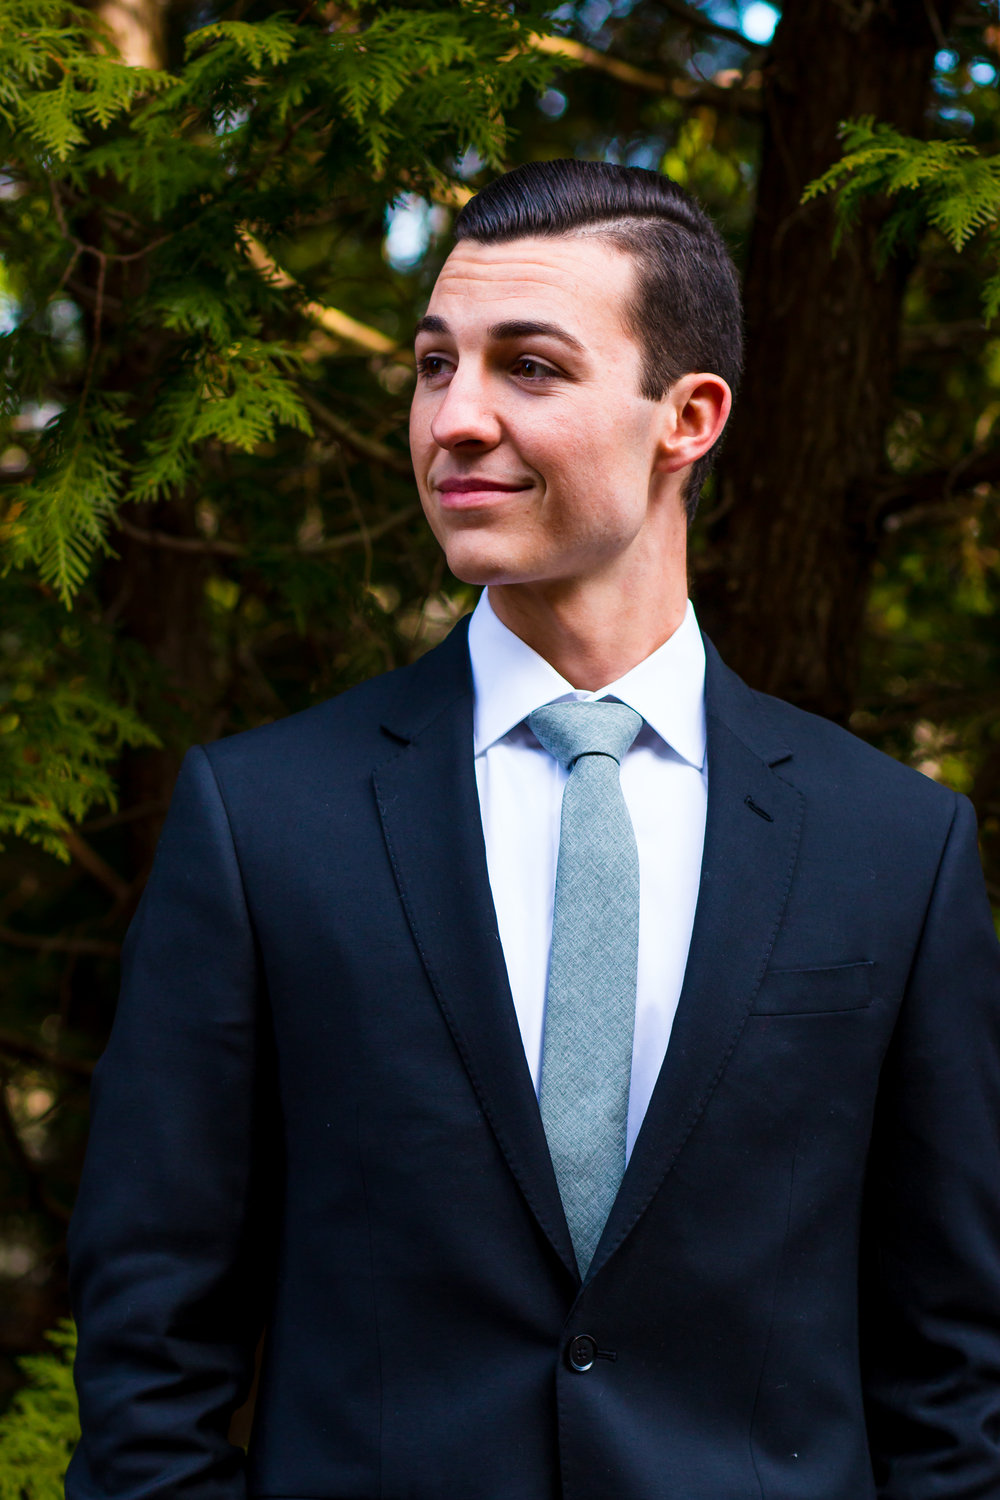 Wedding Photography portrait of a groom at Whitetail Tree Farm in Springport, Indiana.